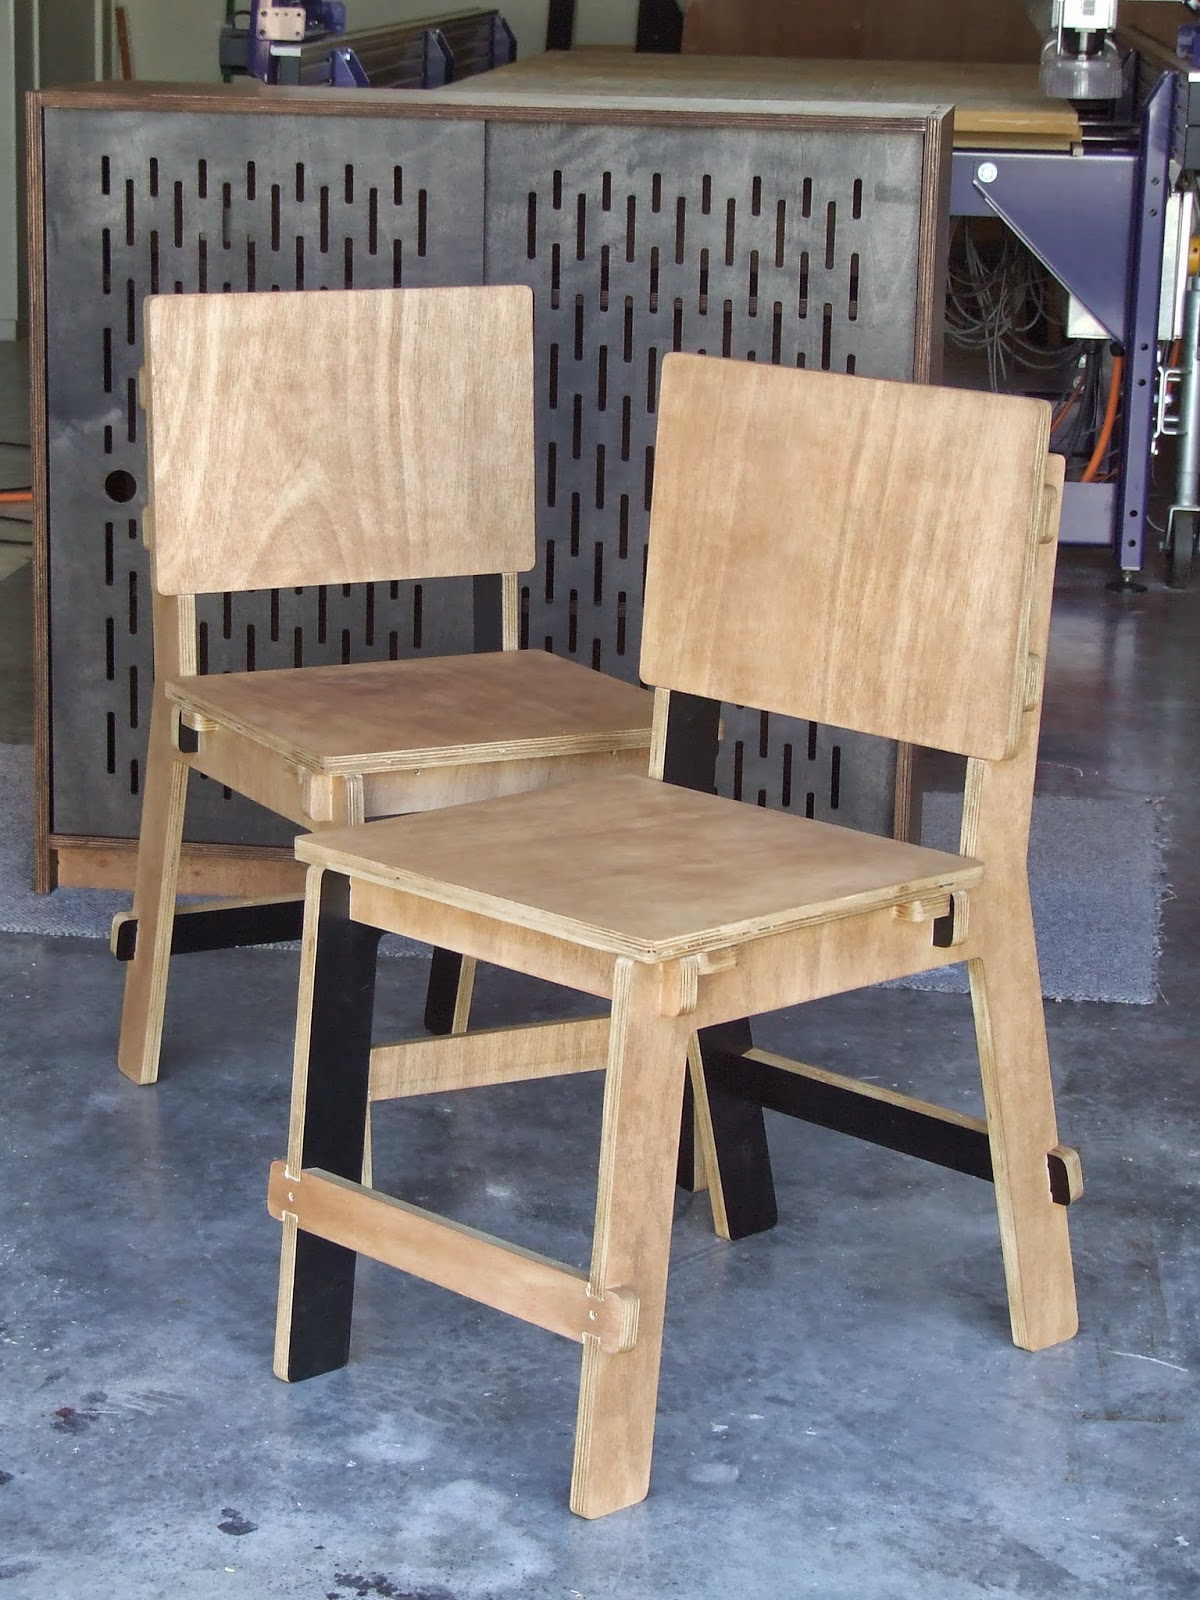 cnc 4 u nz: Plywood chairs